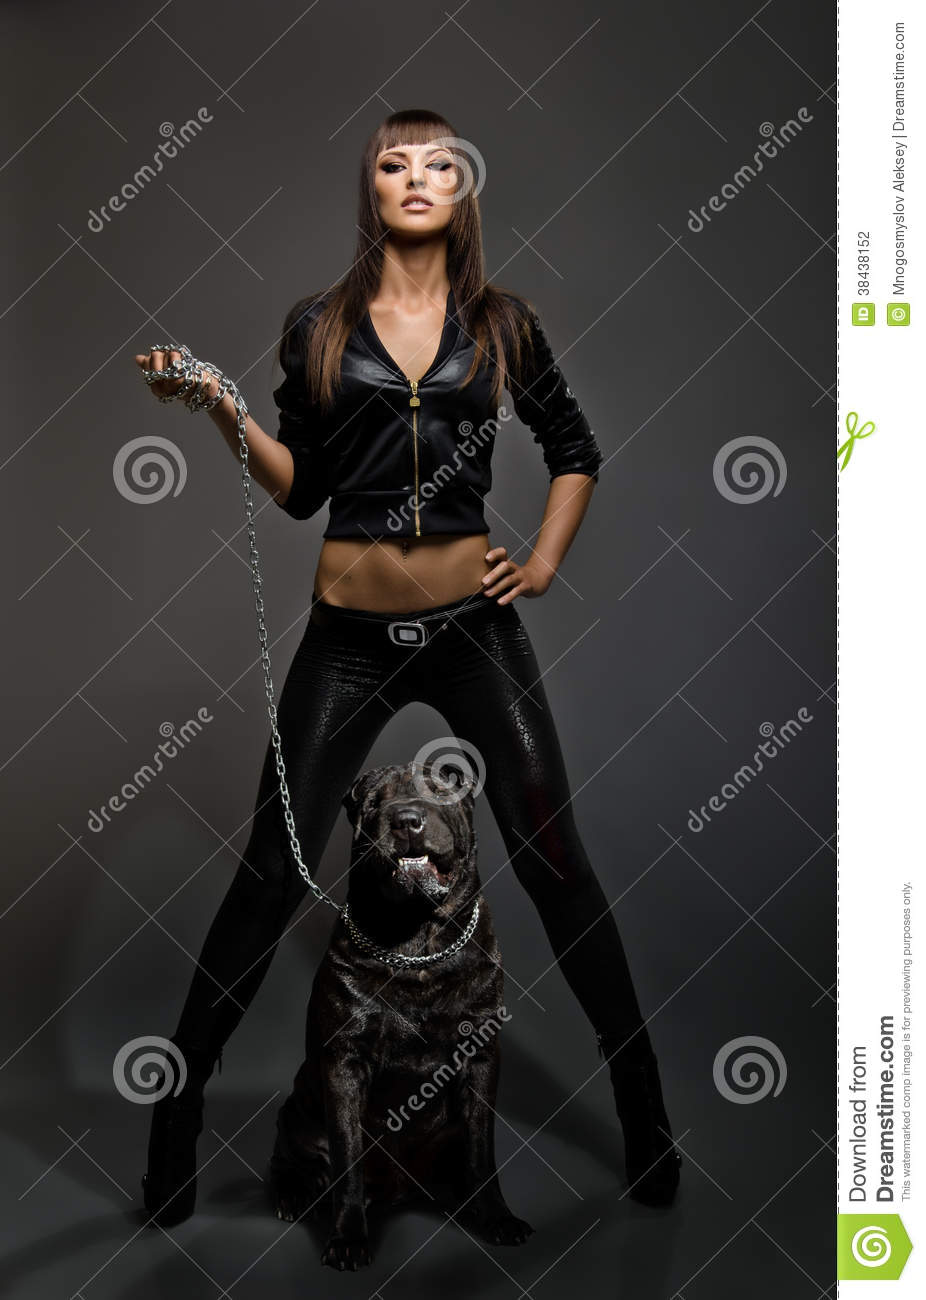 woman with dog stock photo image of lady pretty passionate 38438152. Black Bedroom Furniture Sets. Home Design Ideas